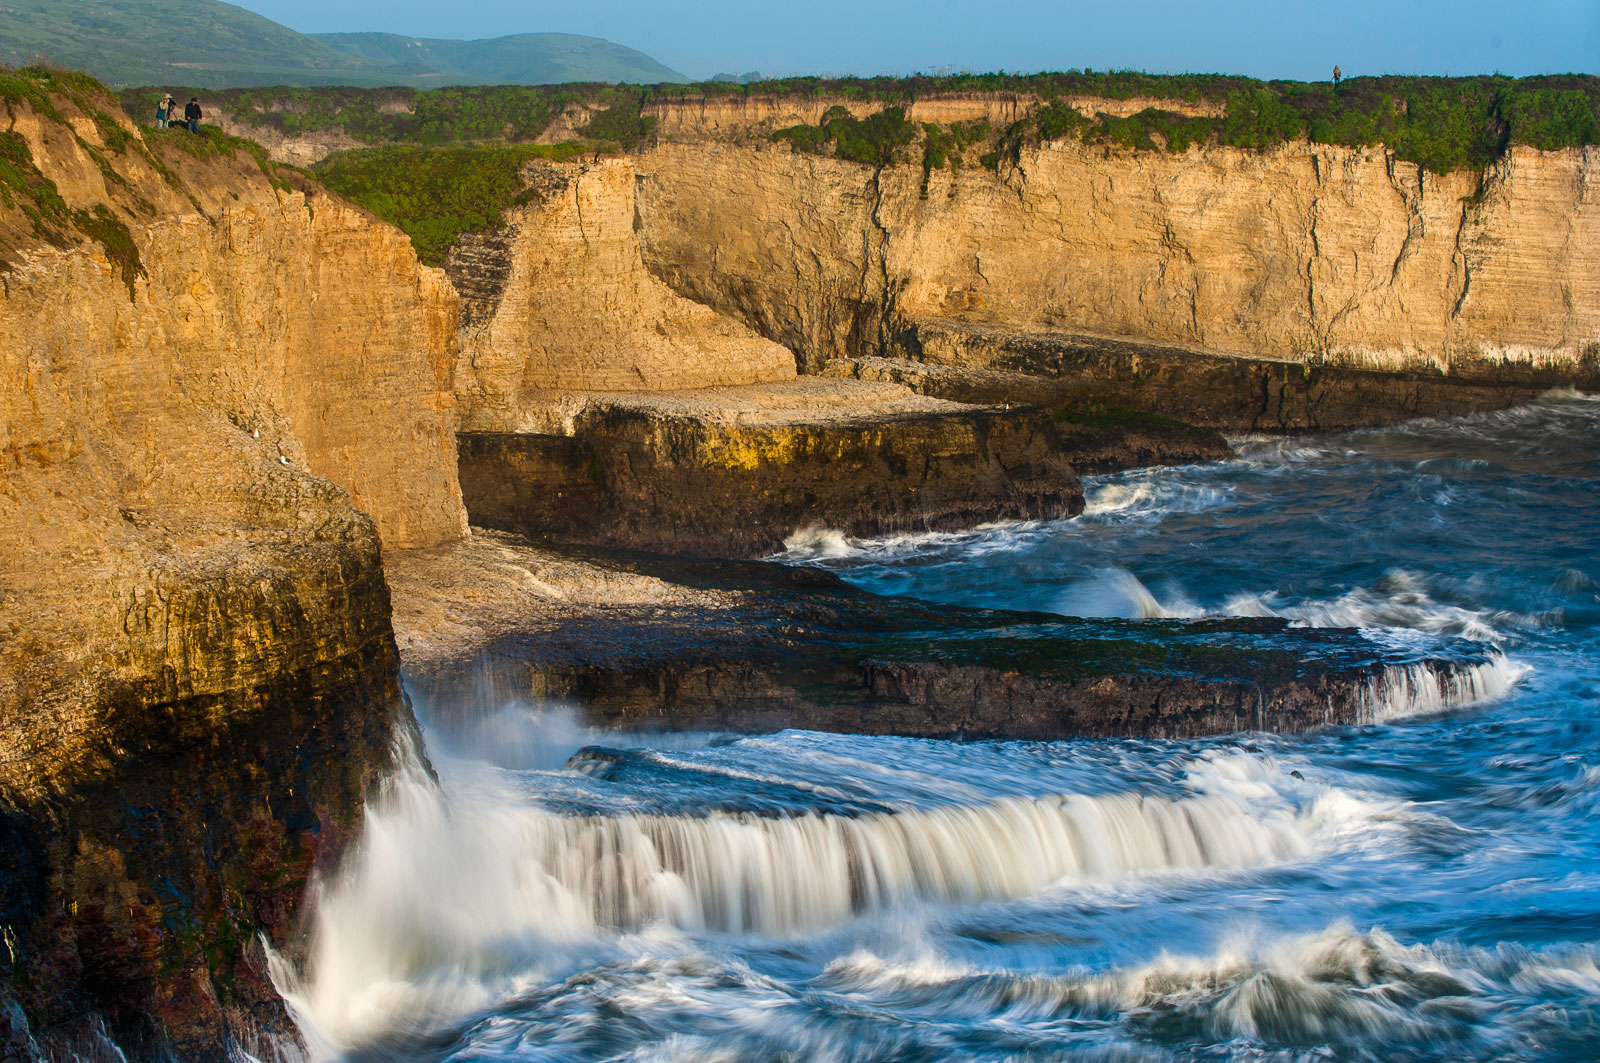 Coastline and storm surf, Sharktooth Cove, Monterey Bay, California